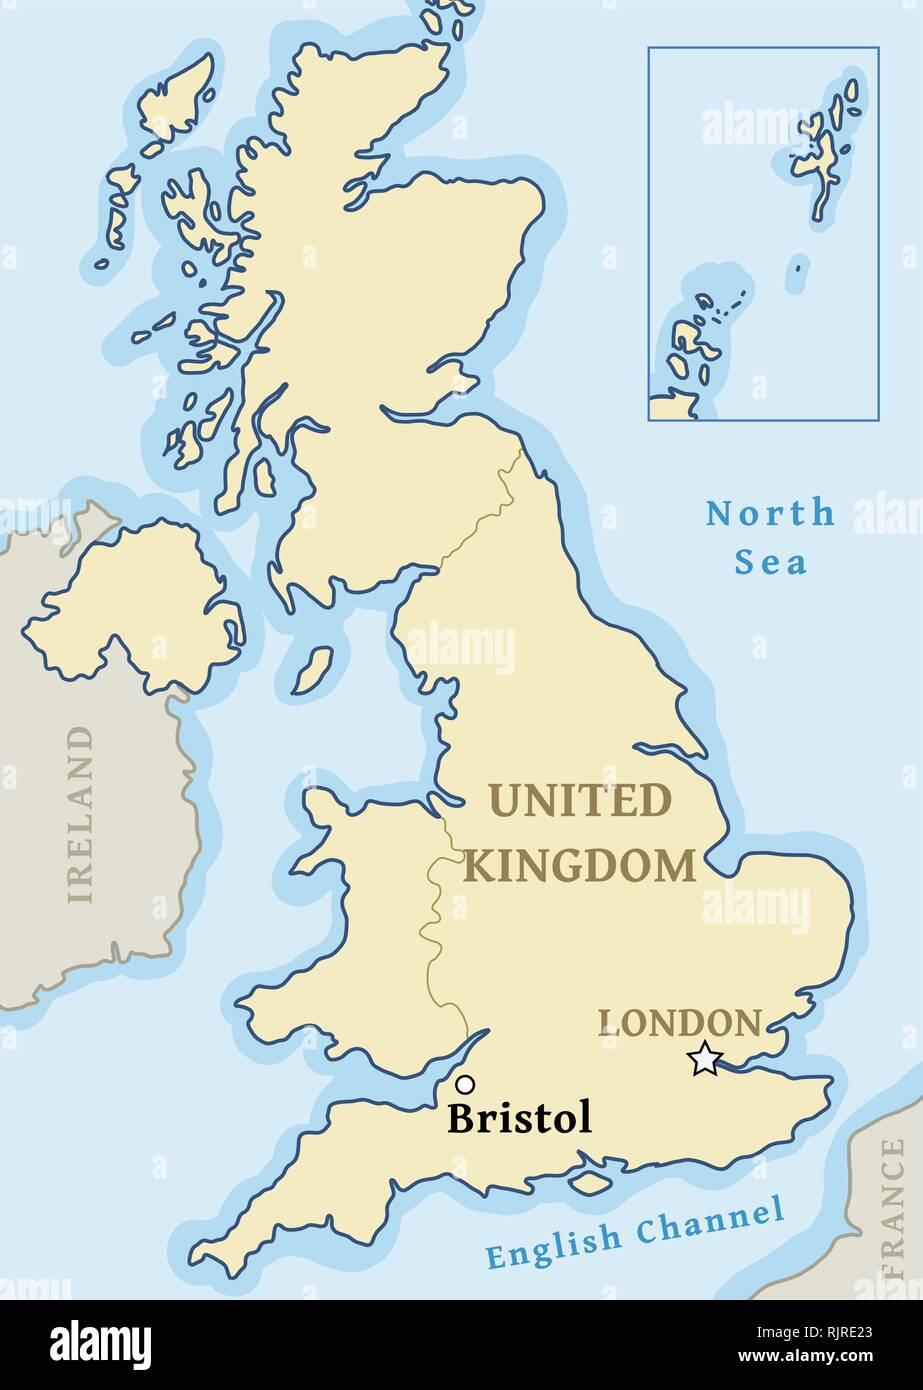 Bristol England Map Bristol UK map location   city marked in United Kingdom (UK map